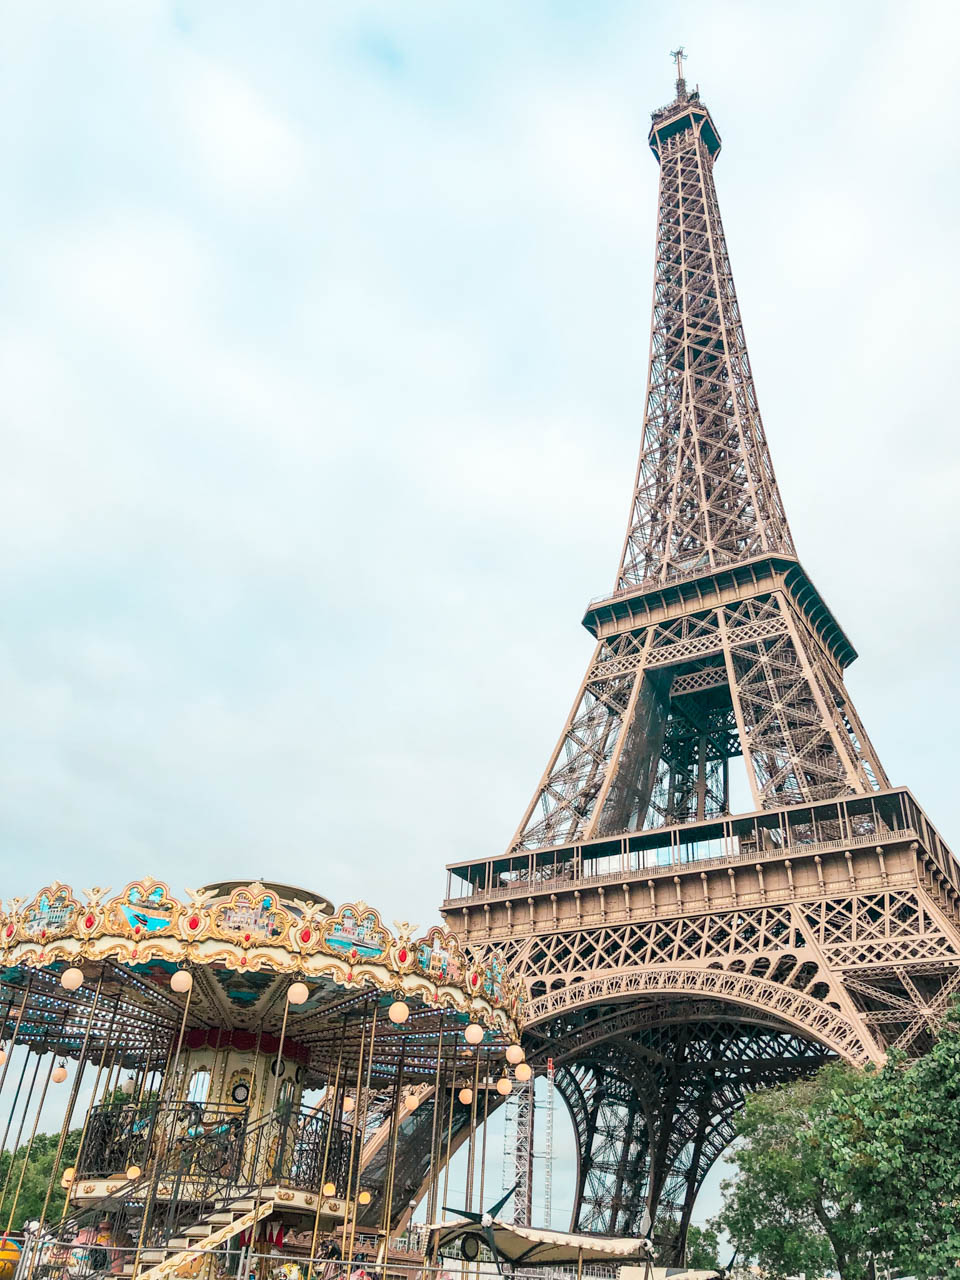 A close-up shot of the Carousel of the Eiffel Tower on the left and the Eiffel Tower on the right